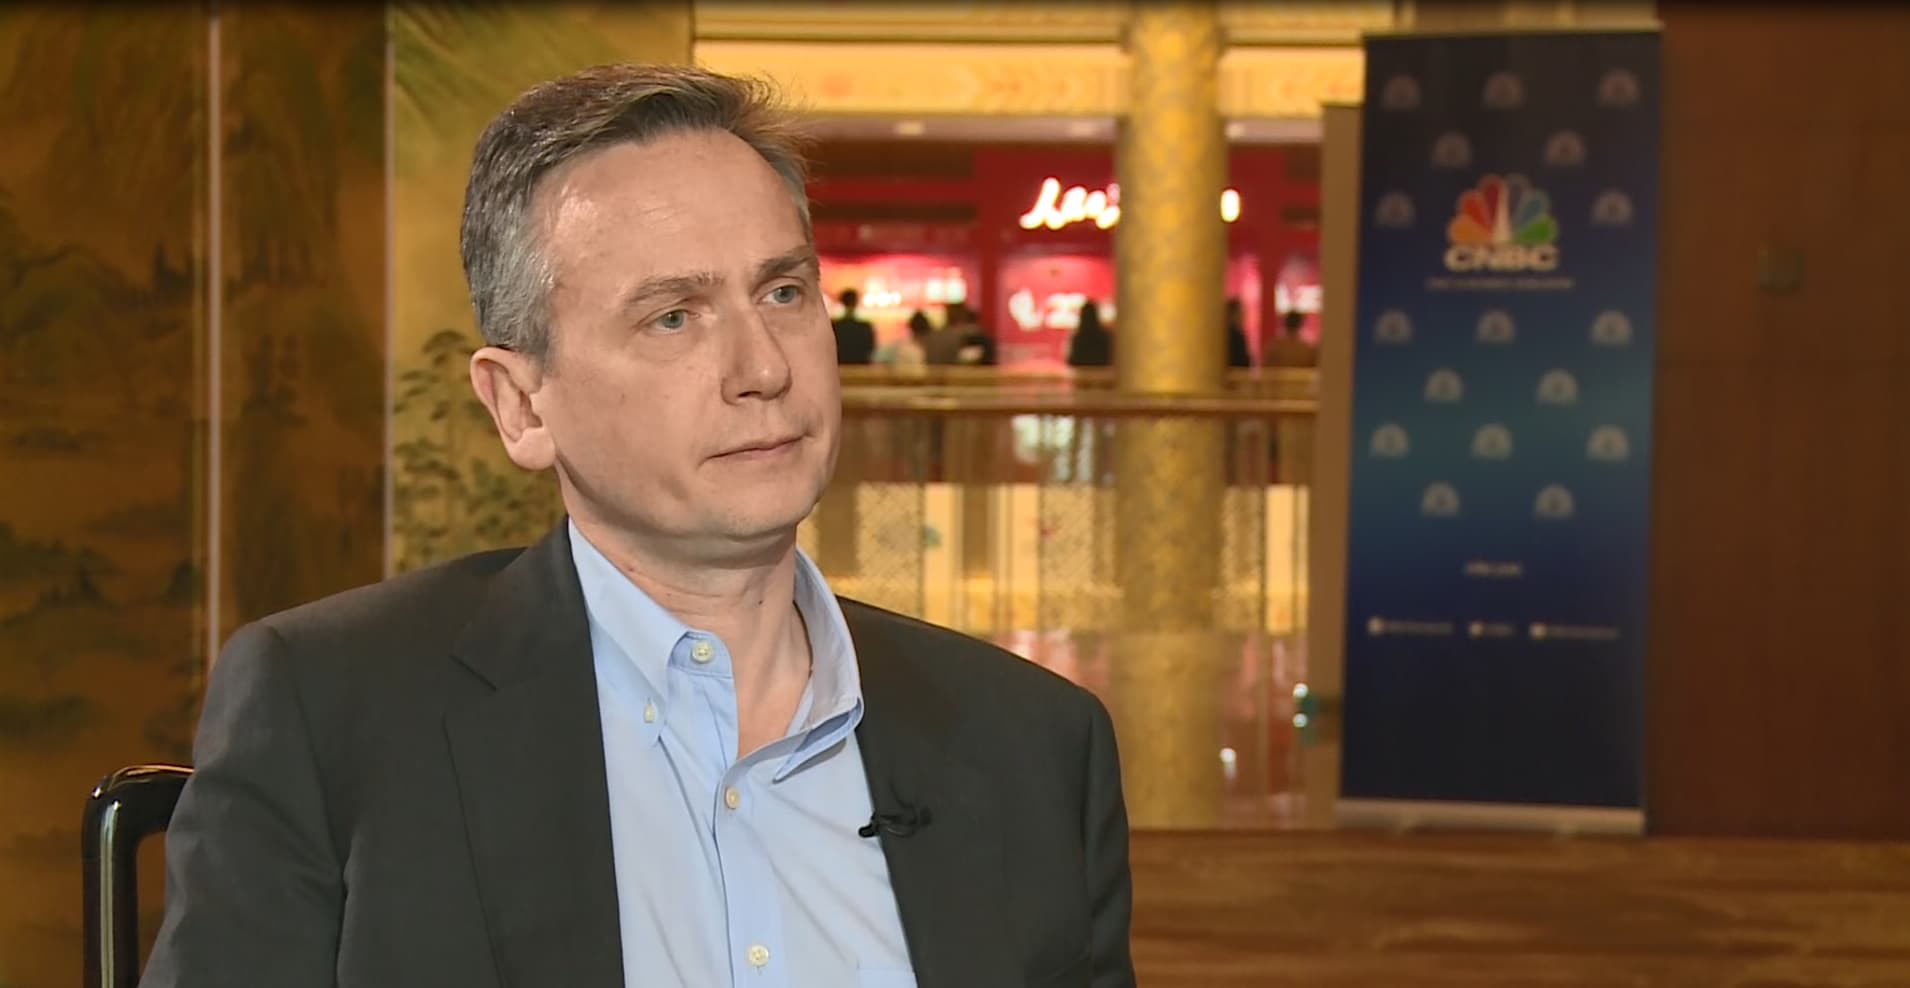 There are 'lots of opportunities' in China: Rio Tinto CEO